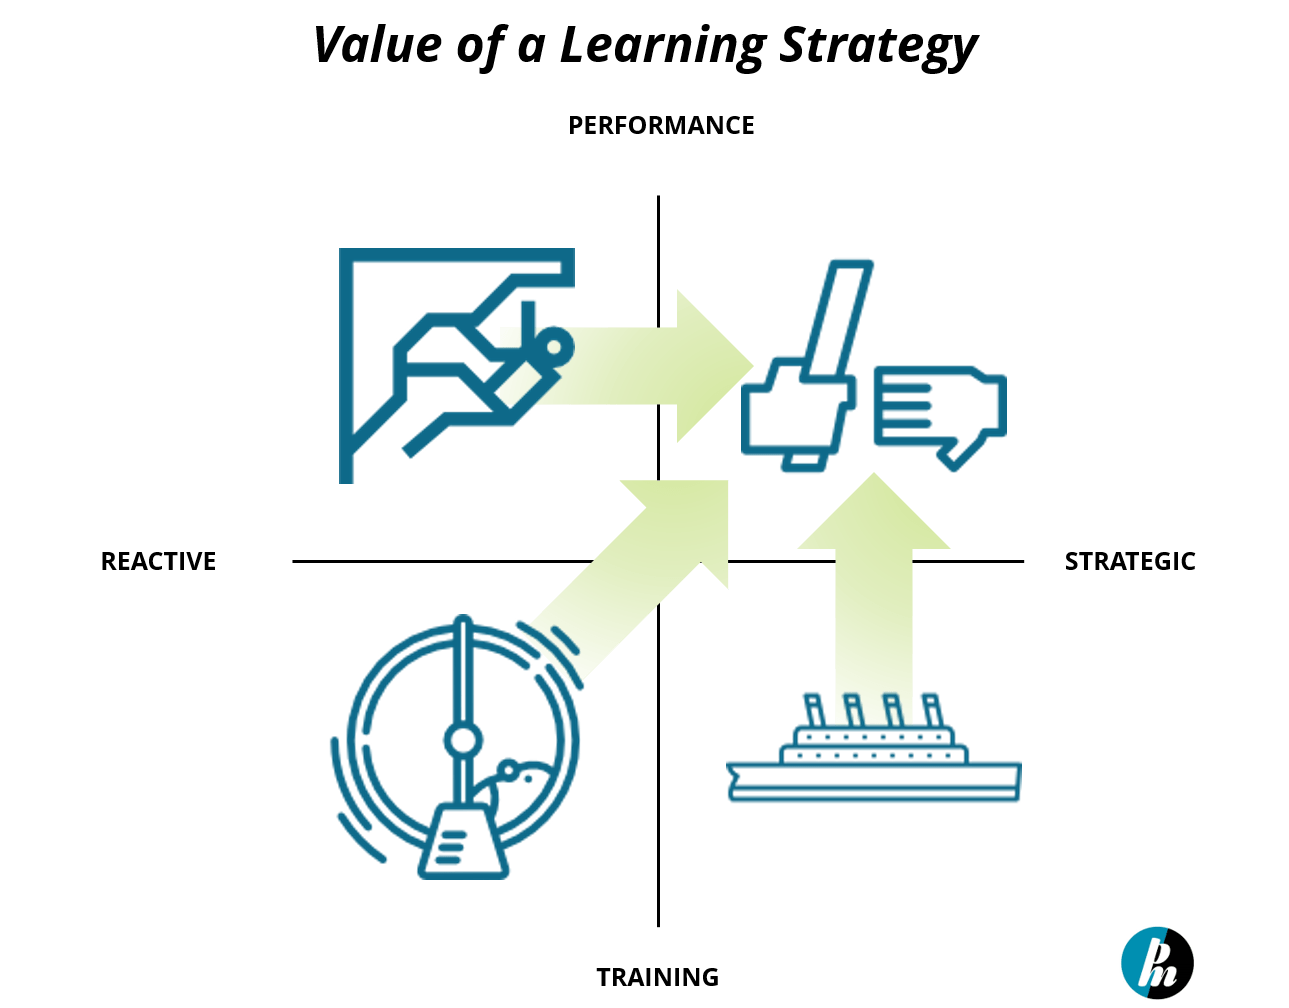 four-box-model-outlining-value-of-a-learning-strategy